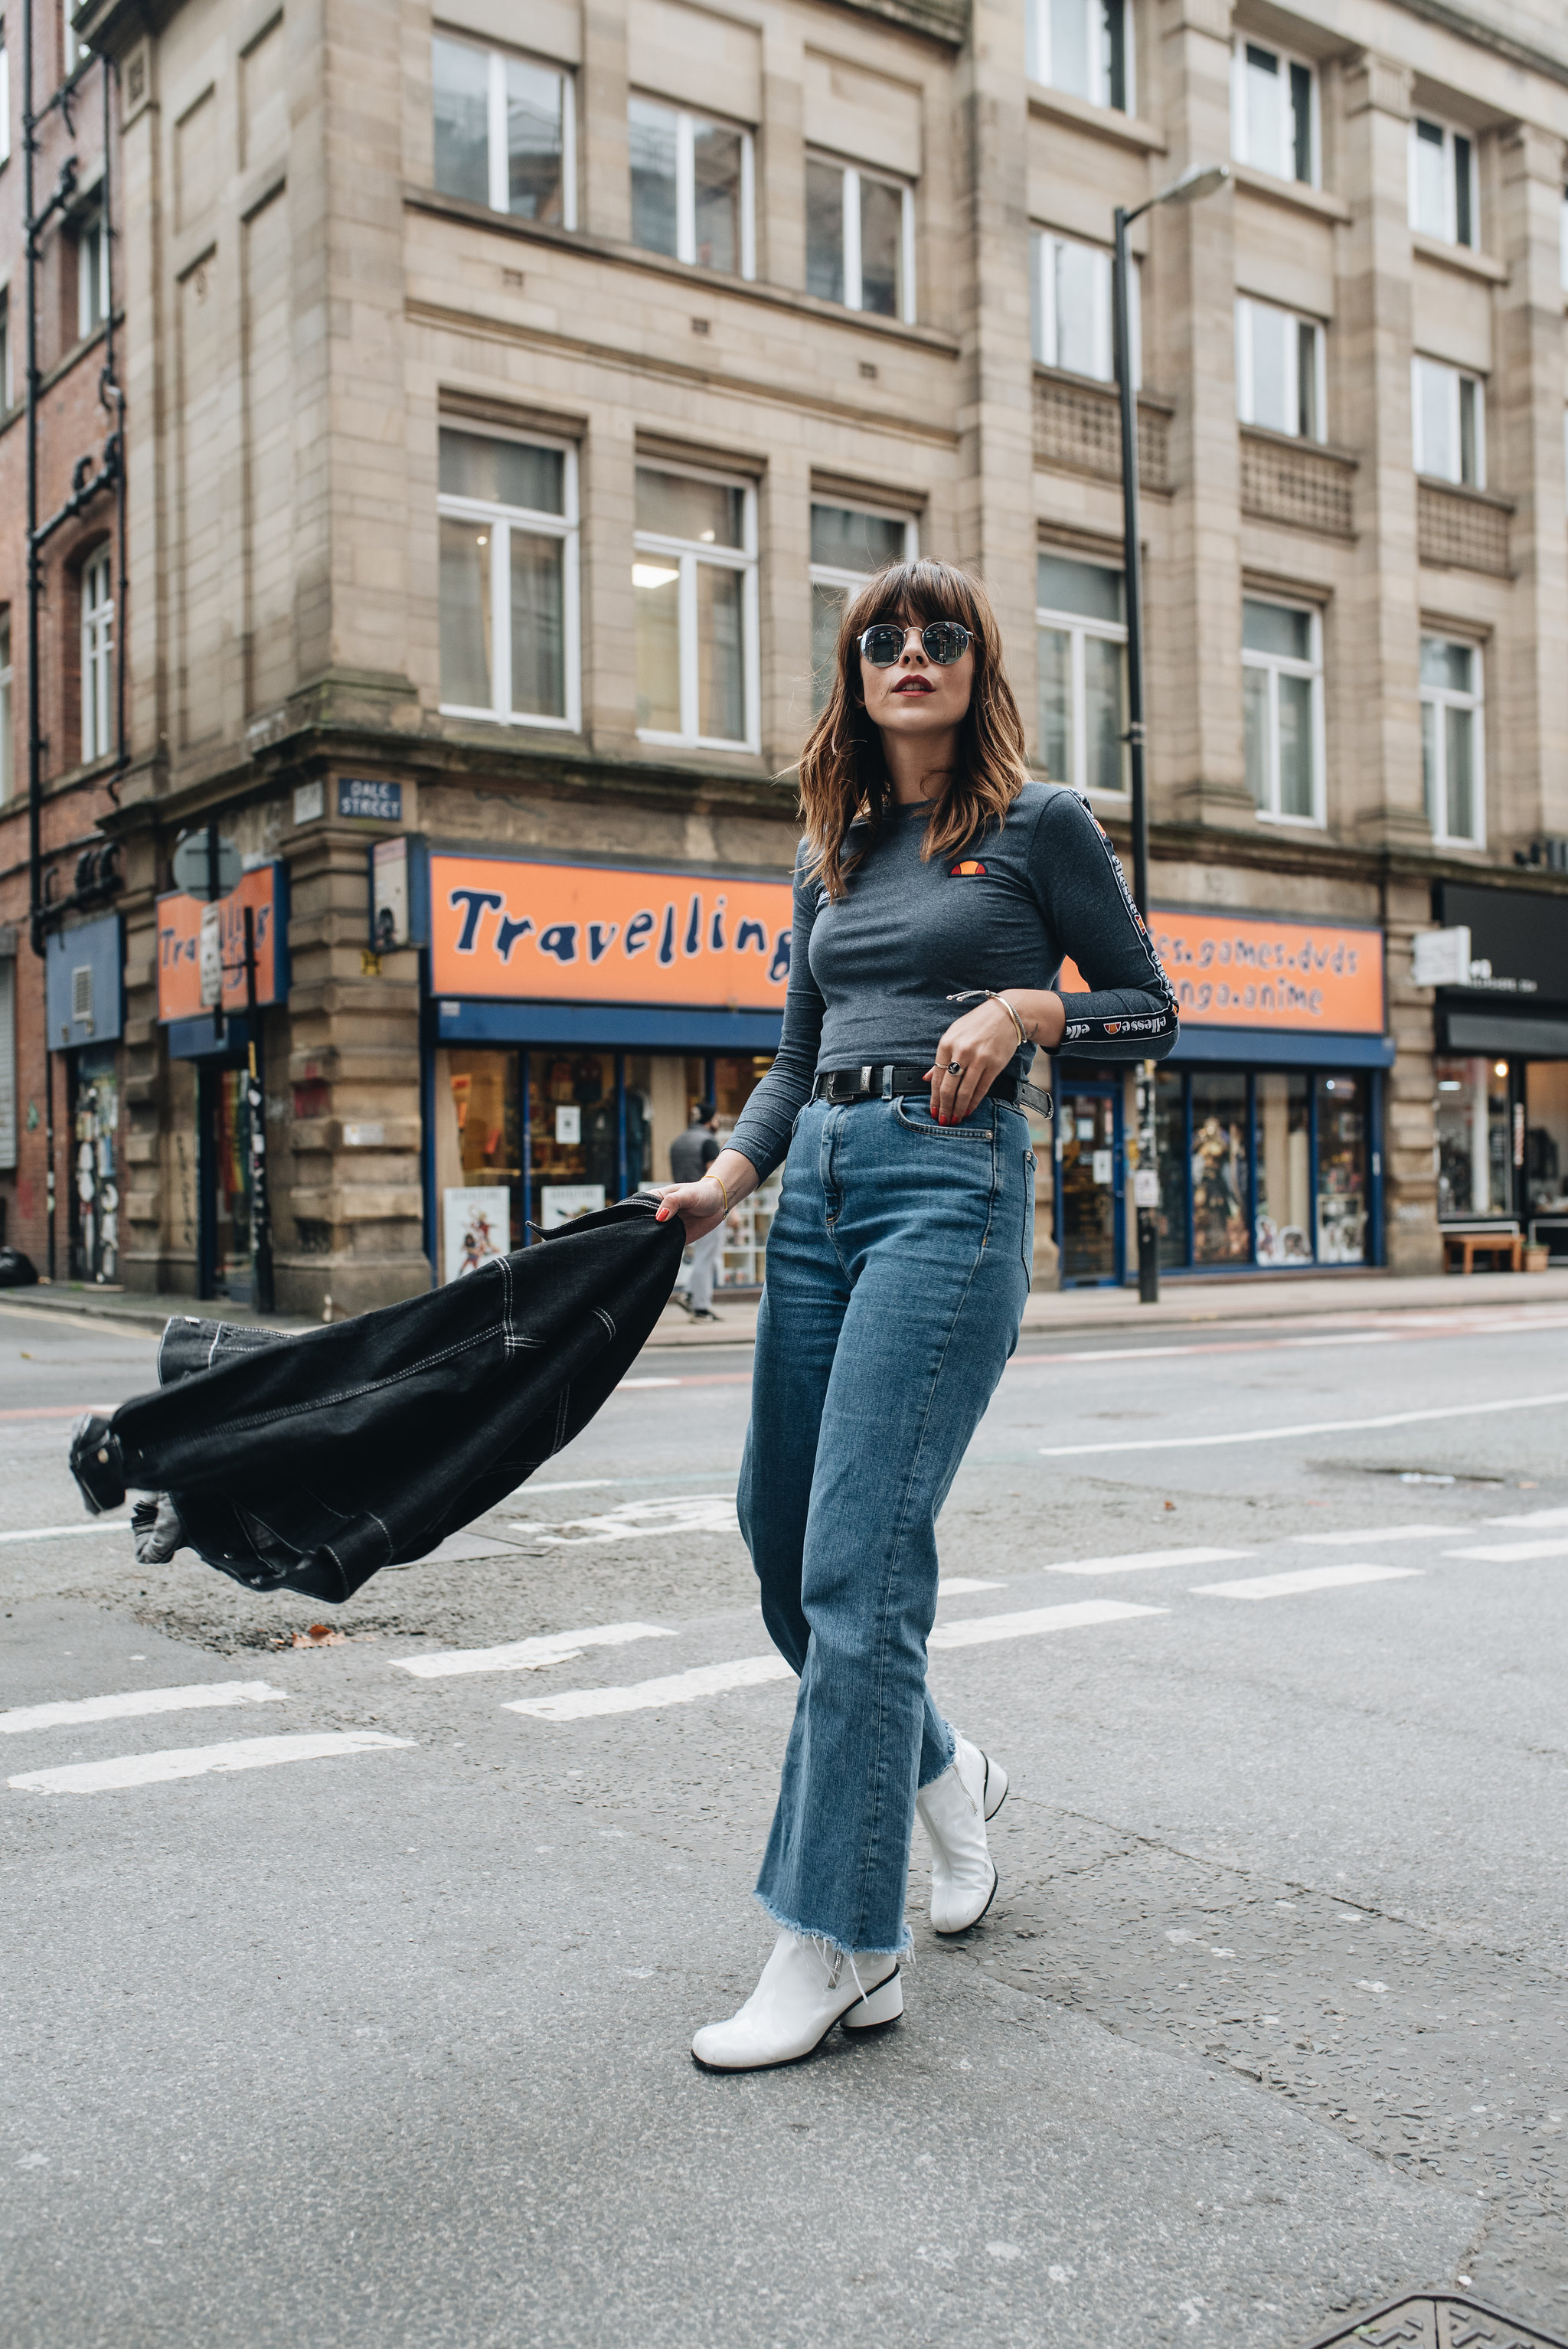 MEGAN ELLABY HOW TO WEAR FLARES